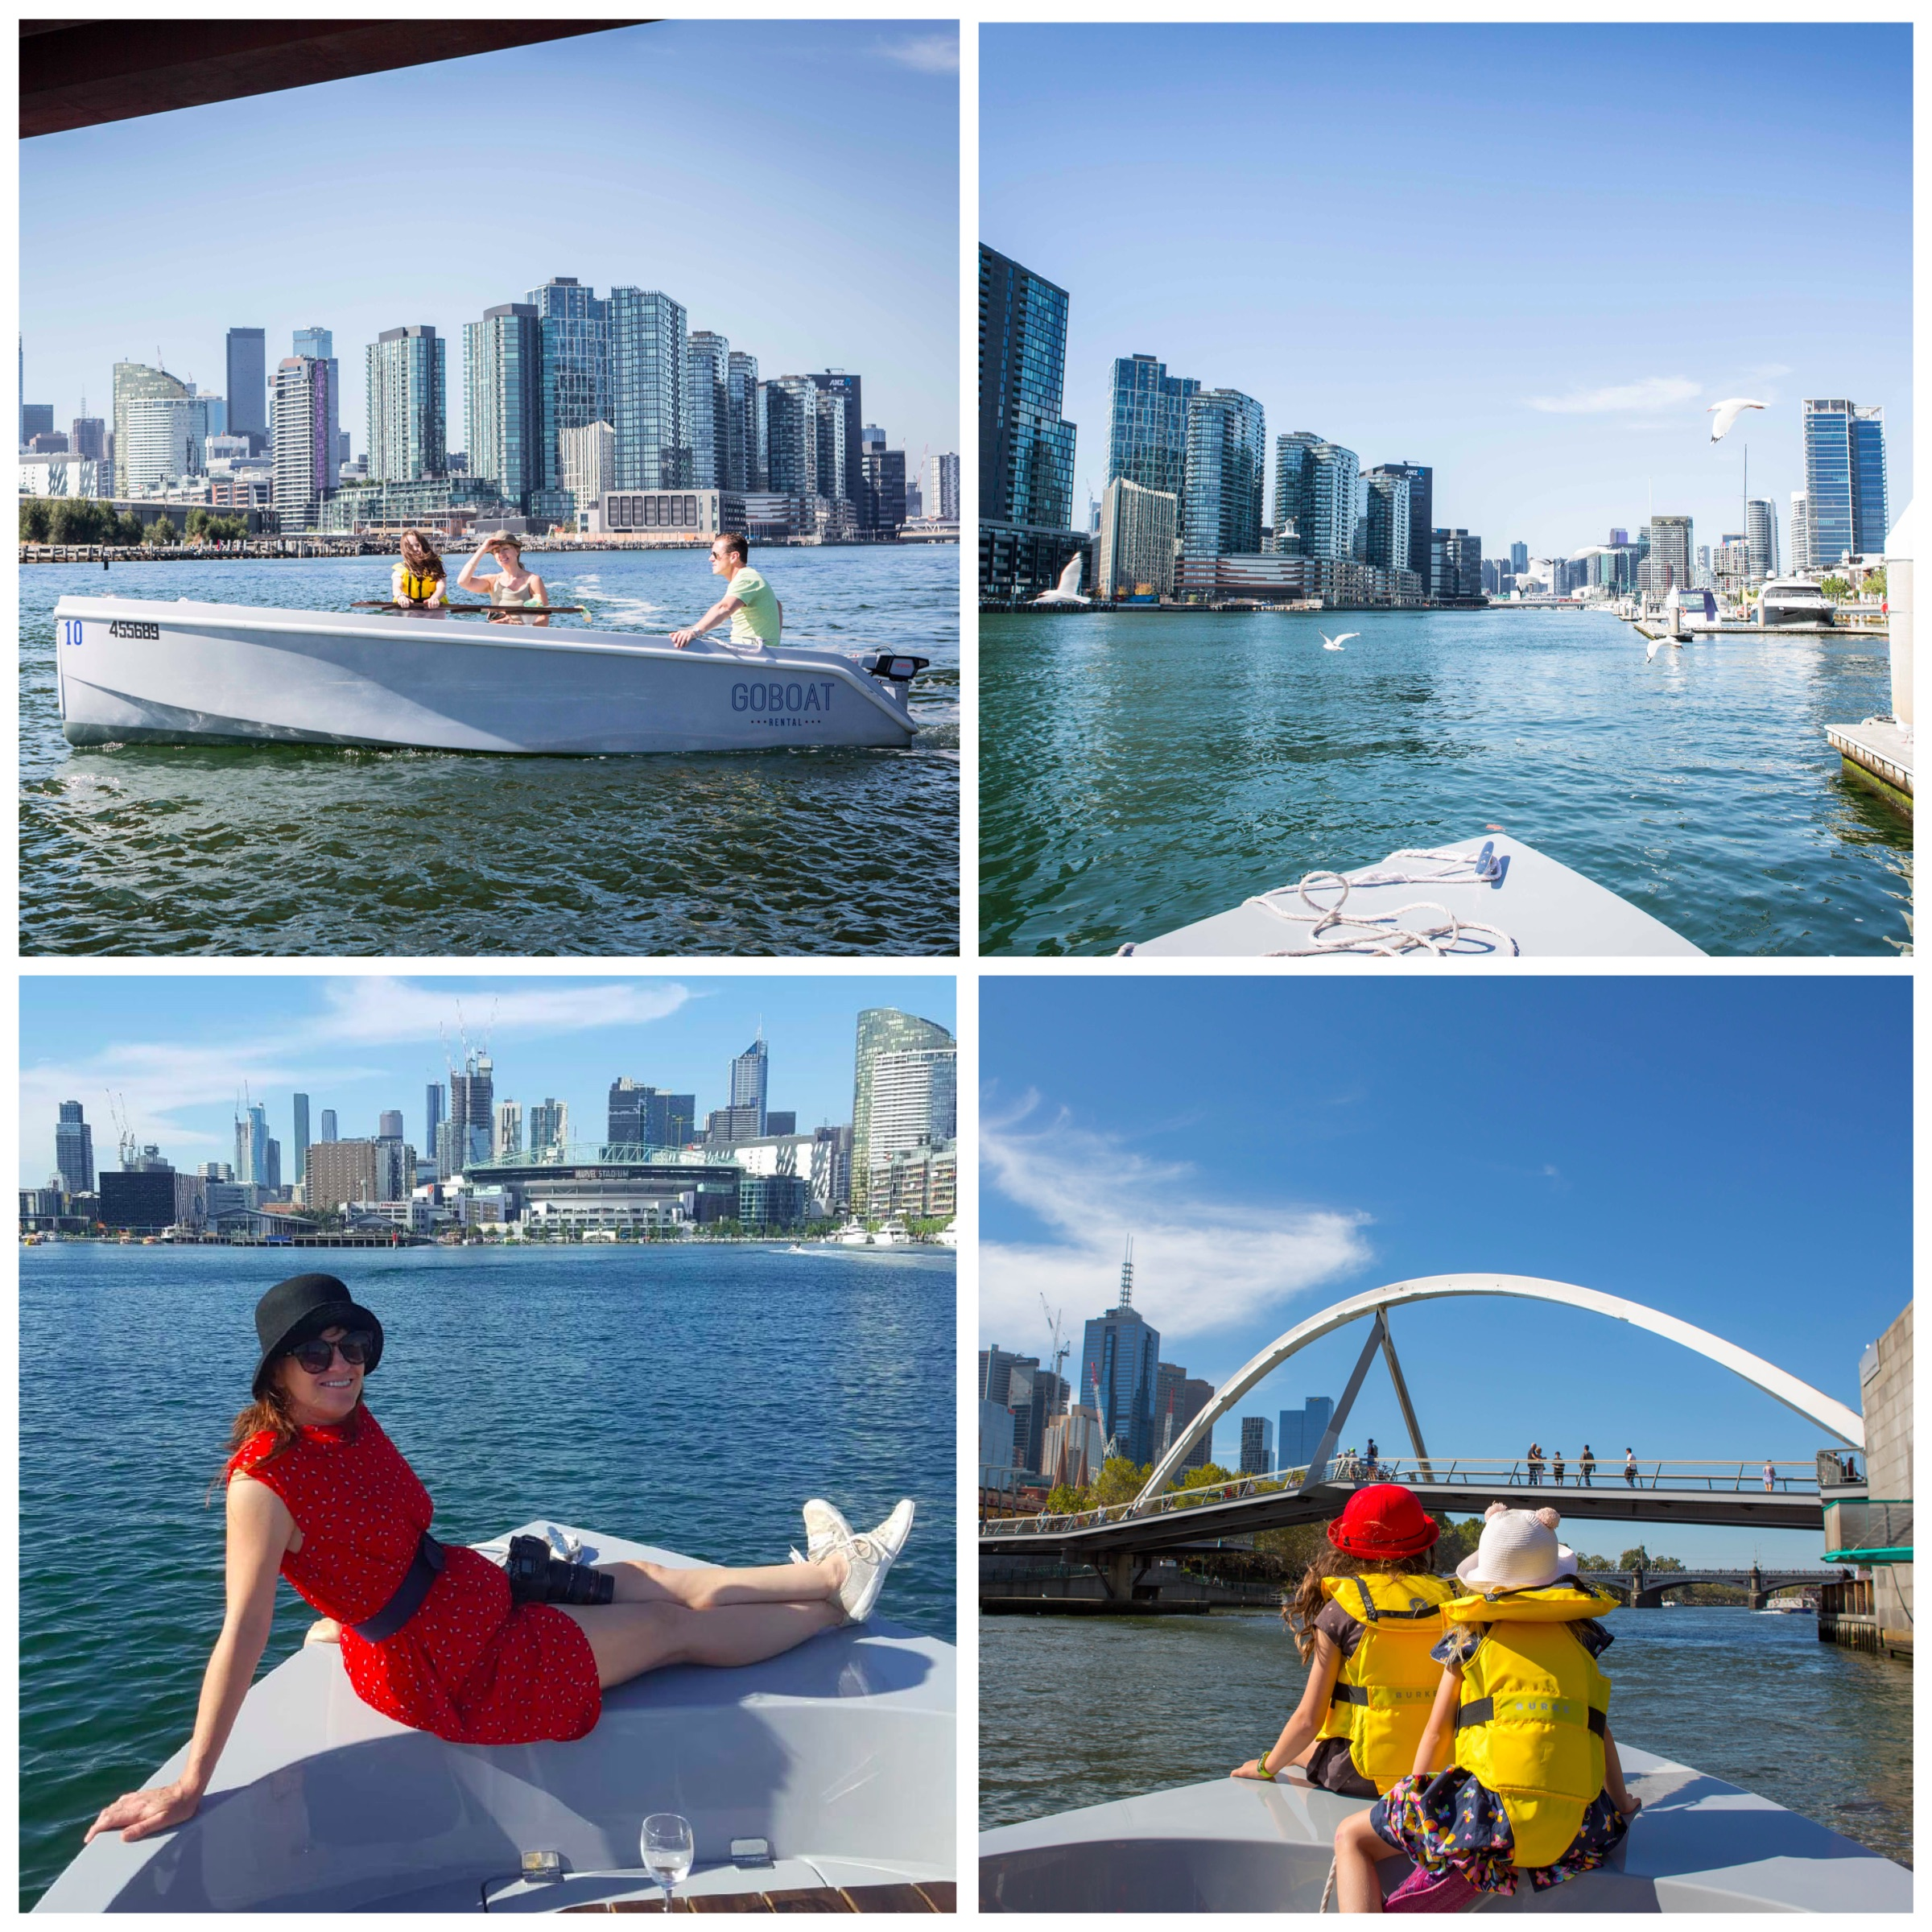 goboat melbourne - mamma knows west .jpg